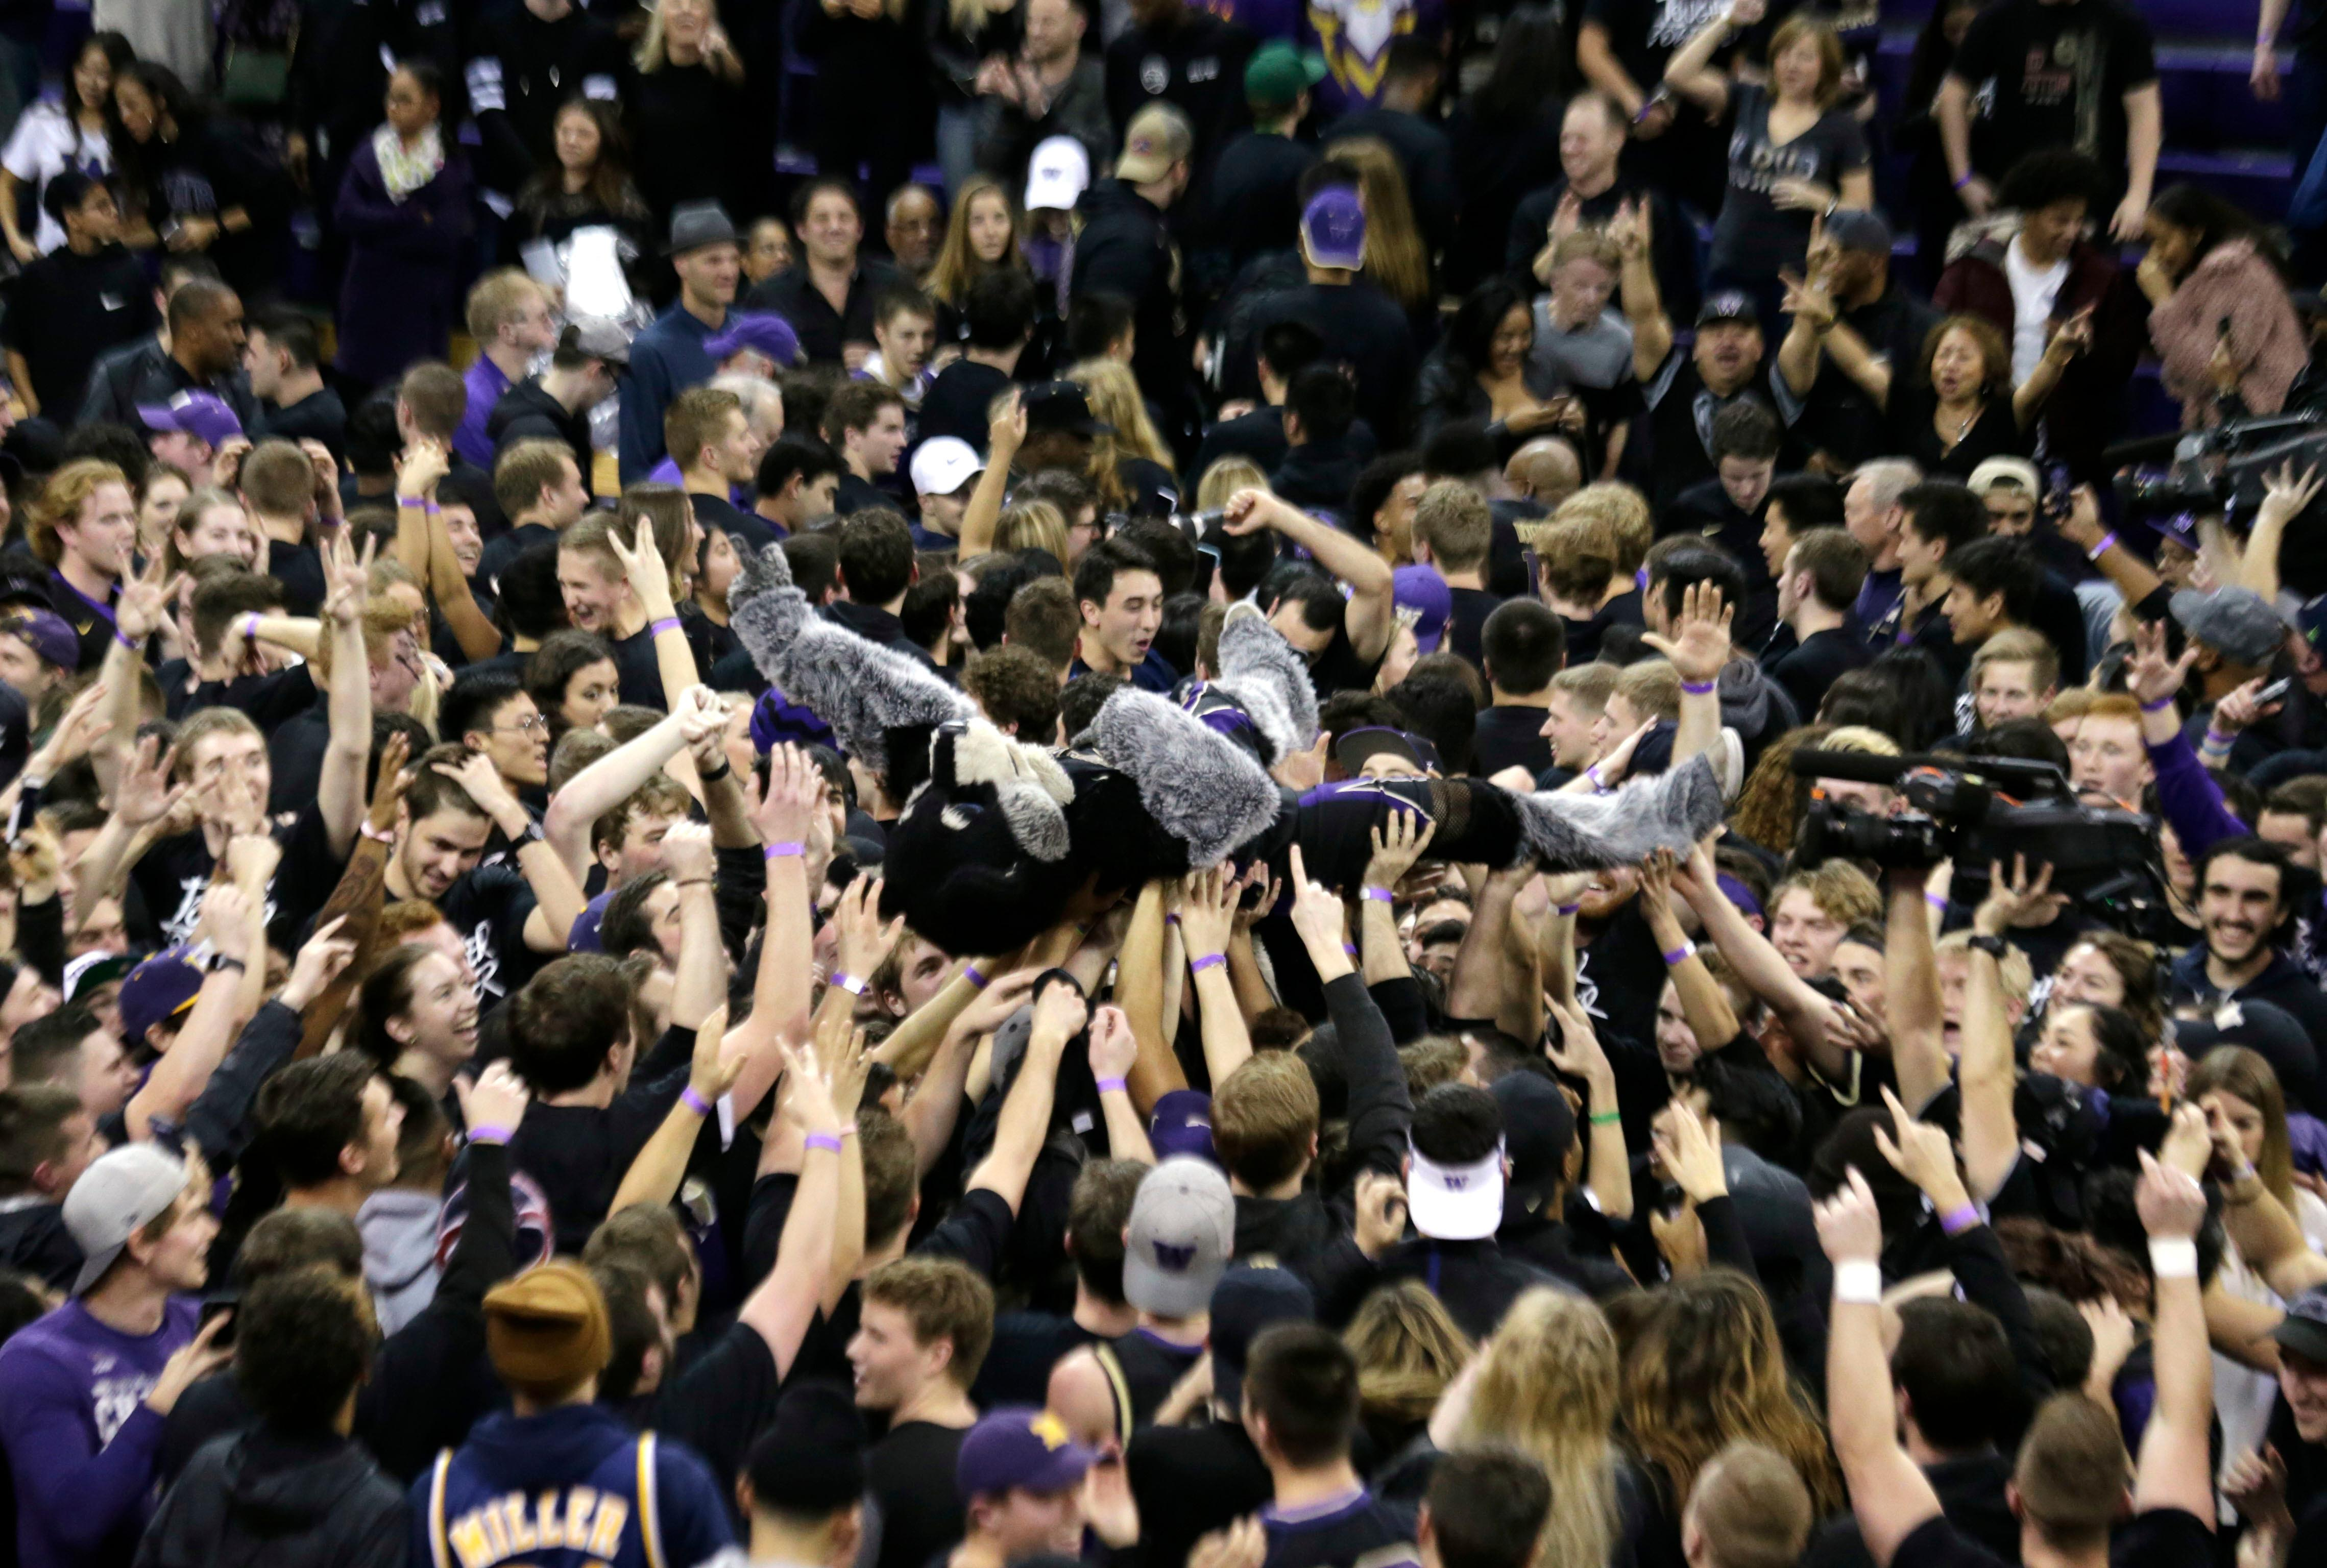 Fans hoist Washington mascot Harry the Husky after the team's 78-75 win over Arizona in an NCAA college basketball game Saturday, Feb. 3, 2018, in Seattle. (AP Photo/John Froschauer)